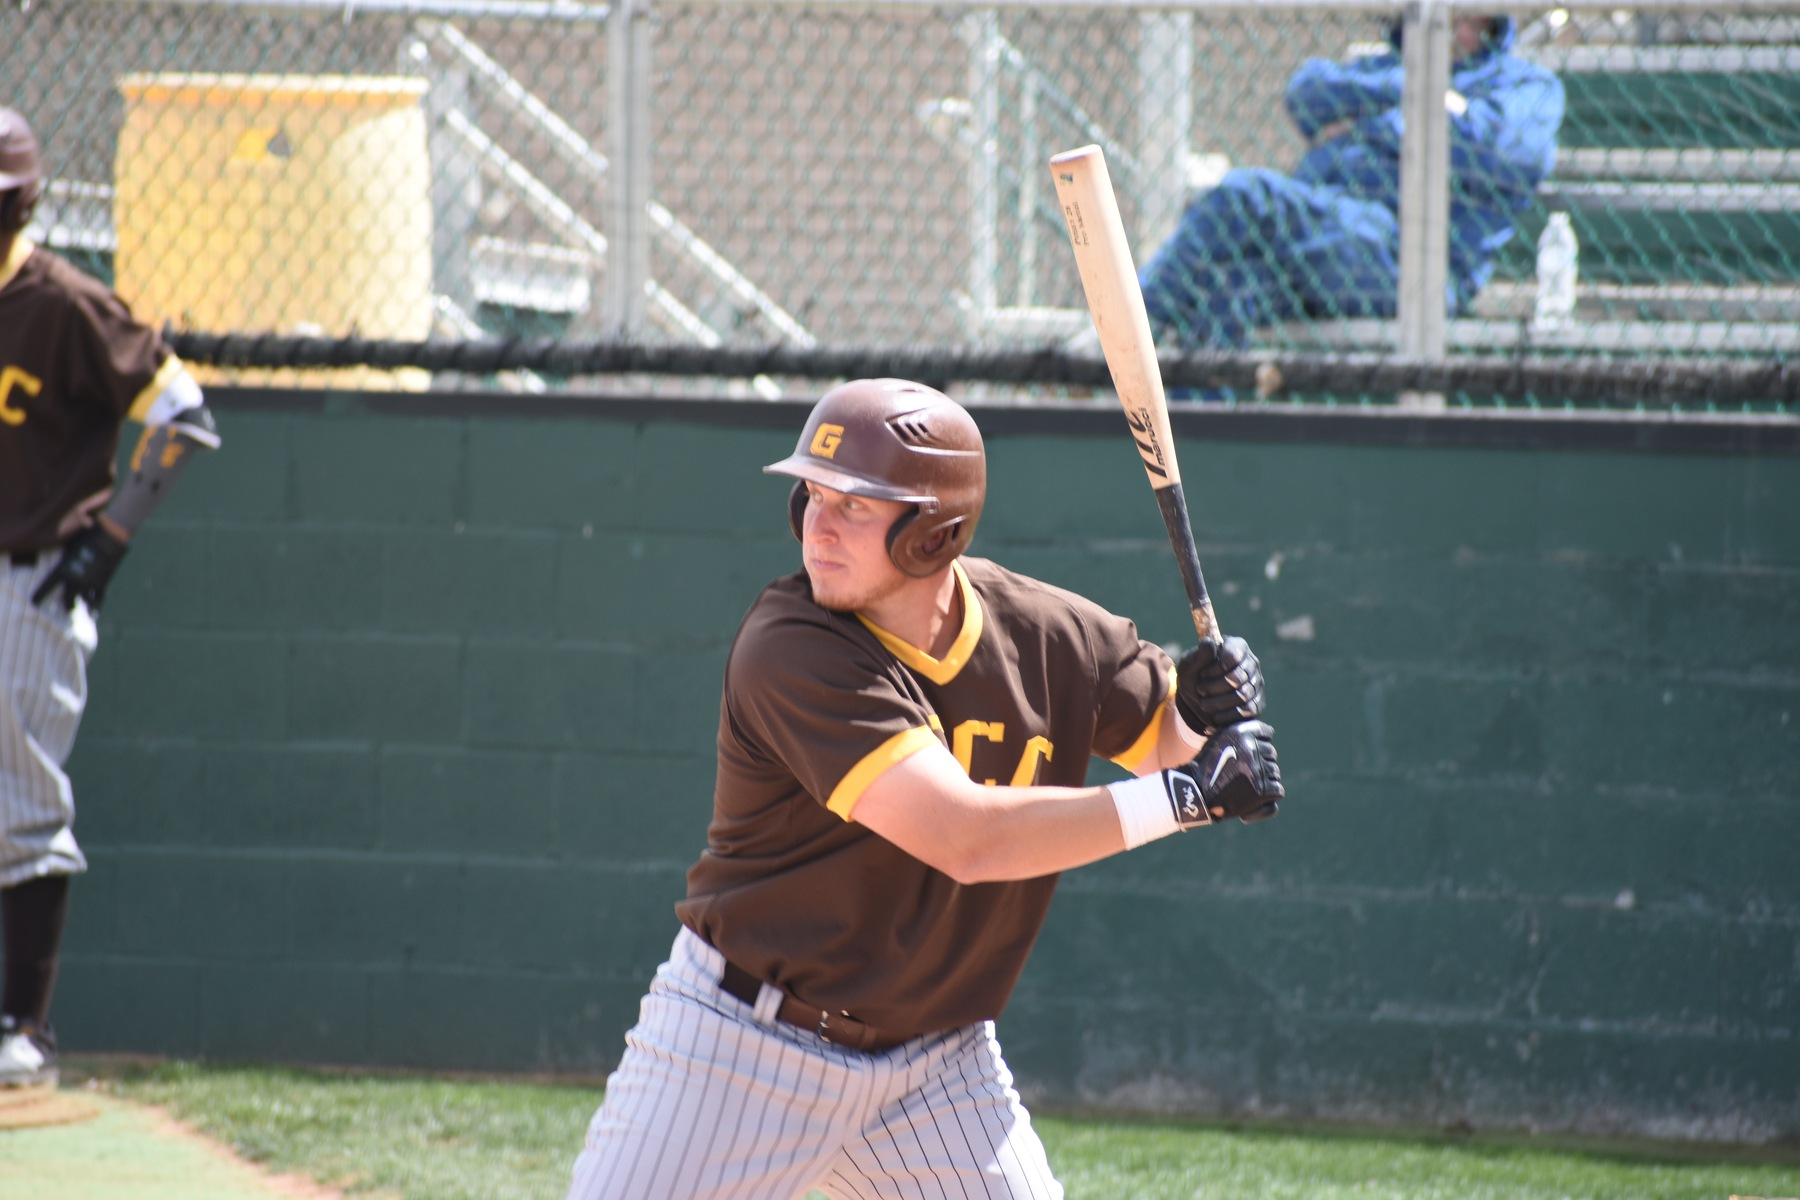 Truslow goes yard twice; Garden City earns split at Seward